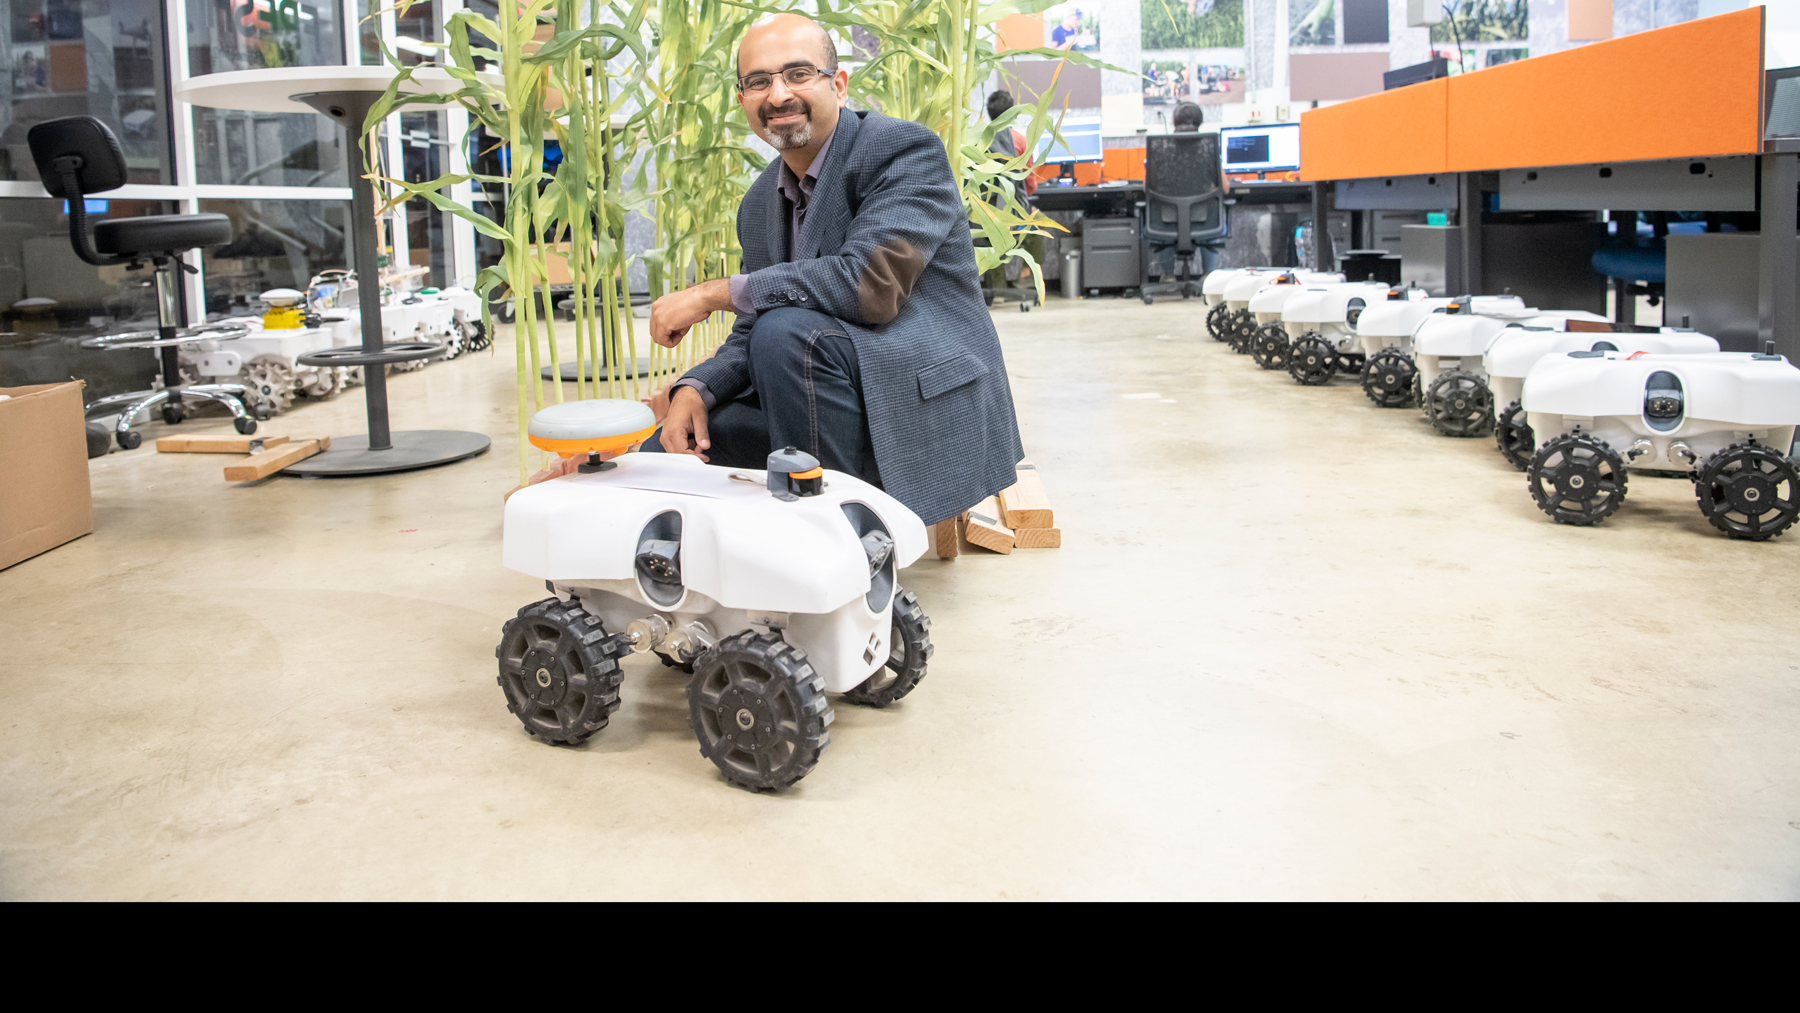 Professor Girish Chowdhary with the TerraSentia robot.